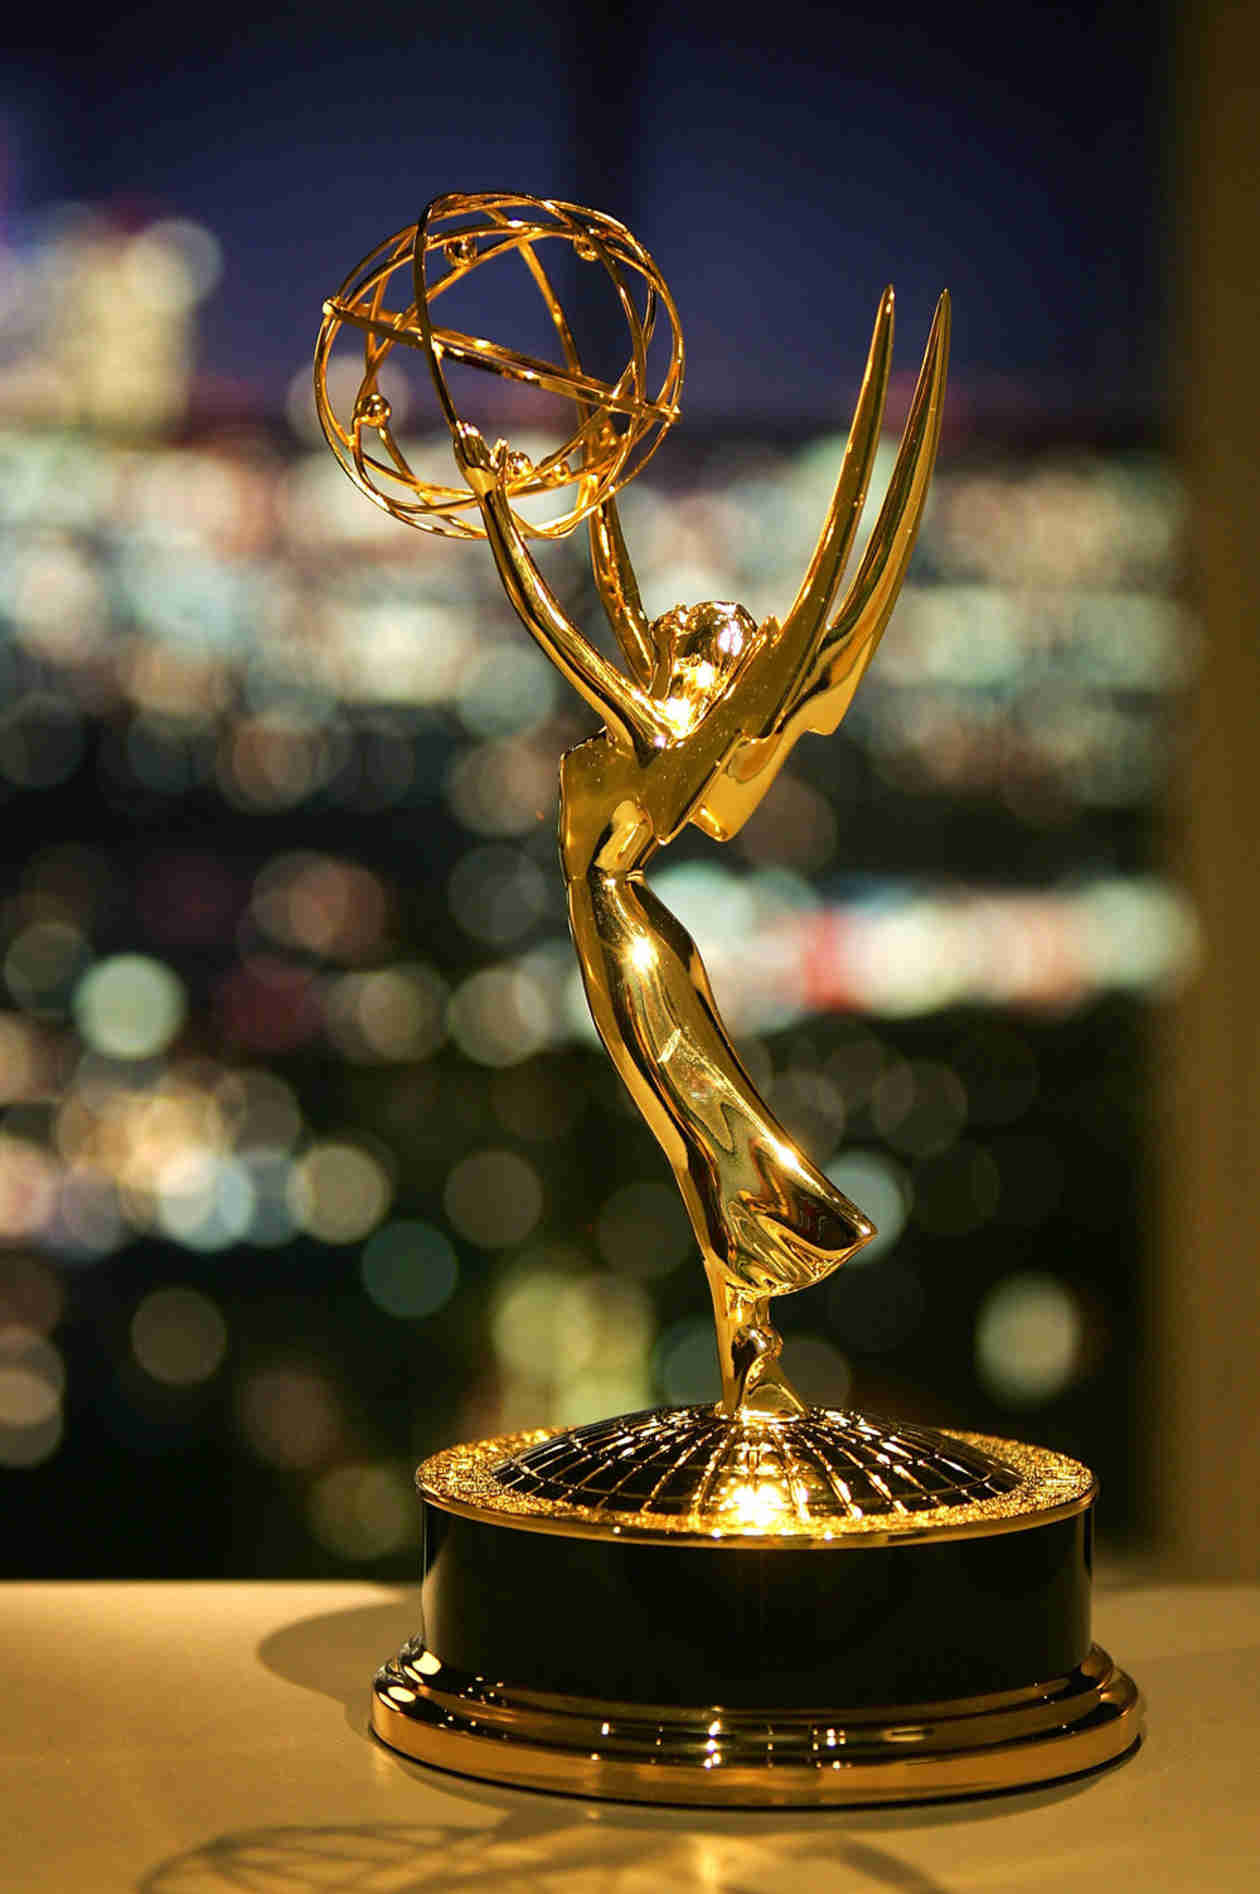 Emmys 2014: Where to Watch the Award Show Online